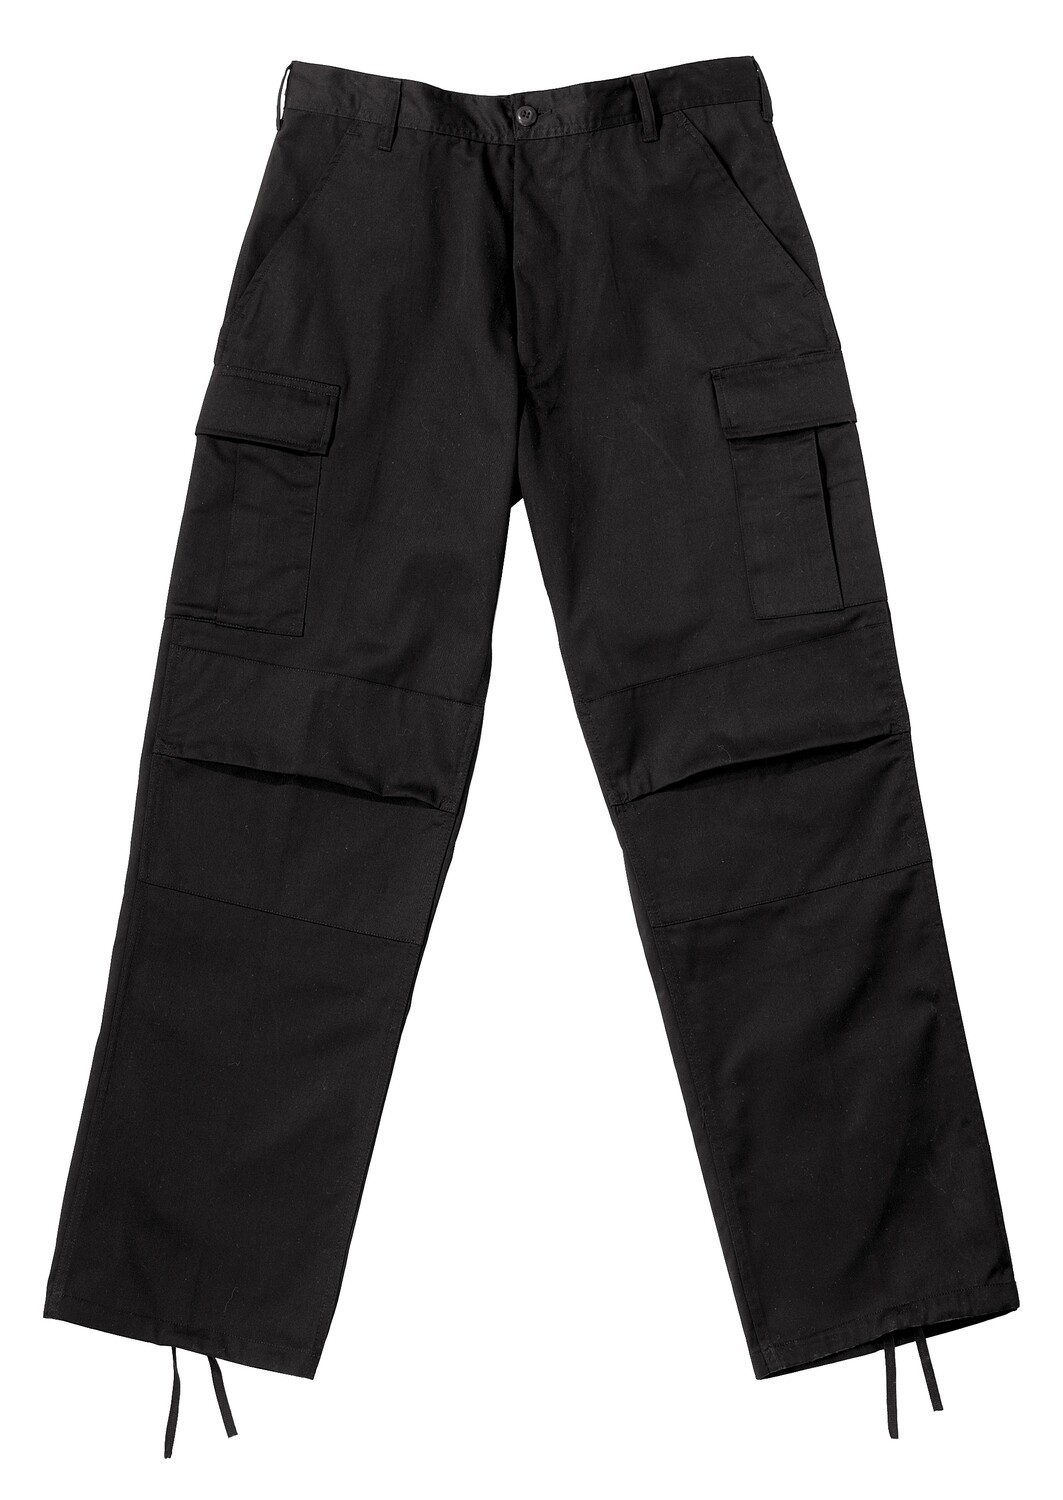 Rothco, 2971, Relaxed Fit Zipper Fly Black Fatigue Pants